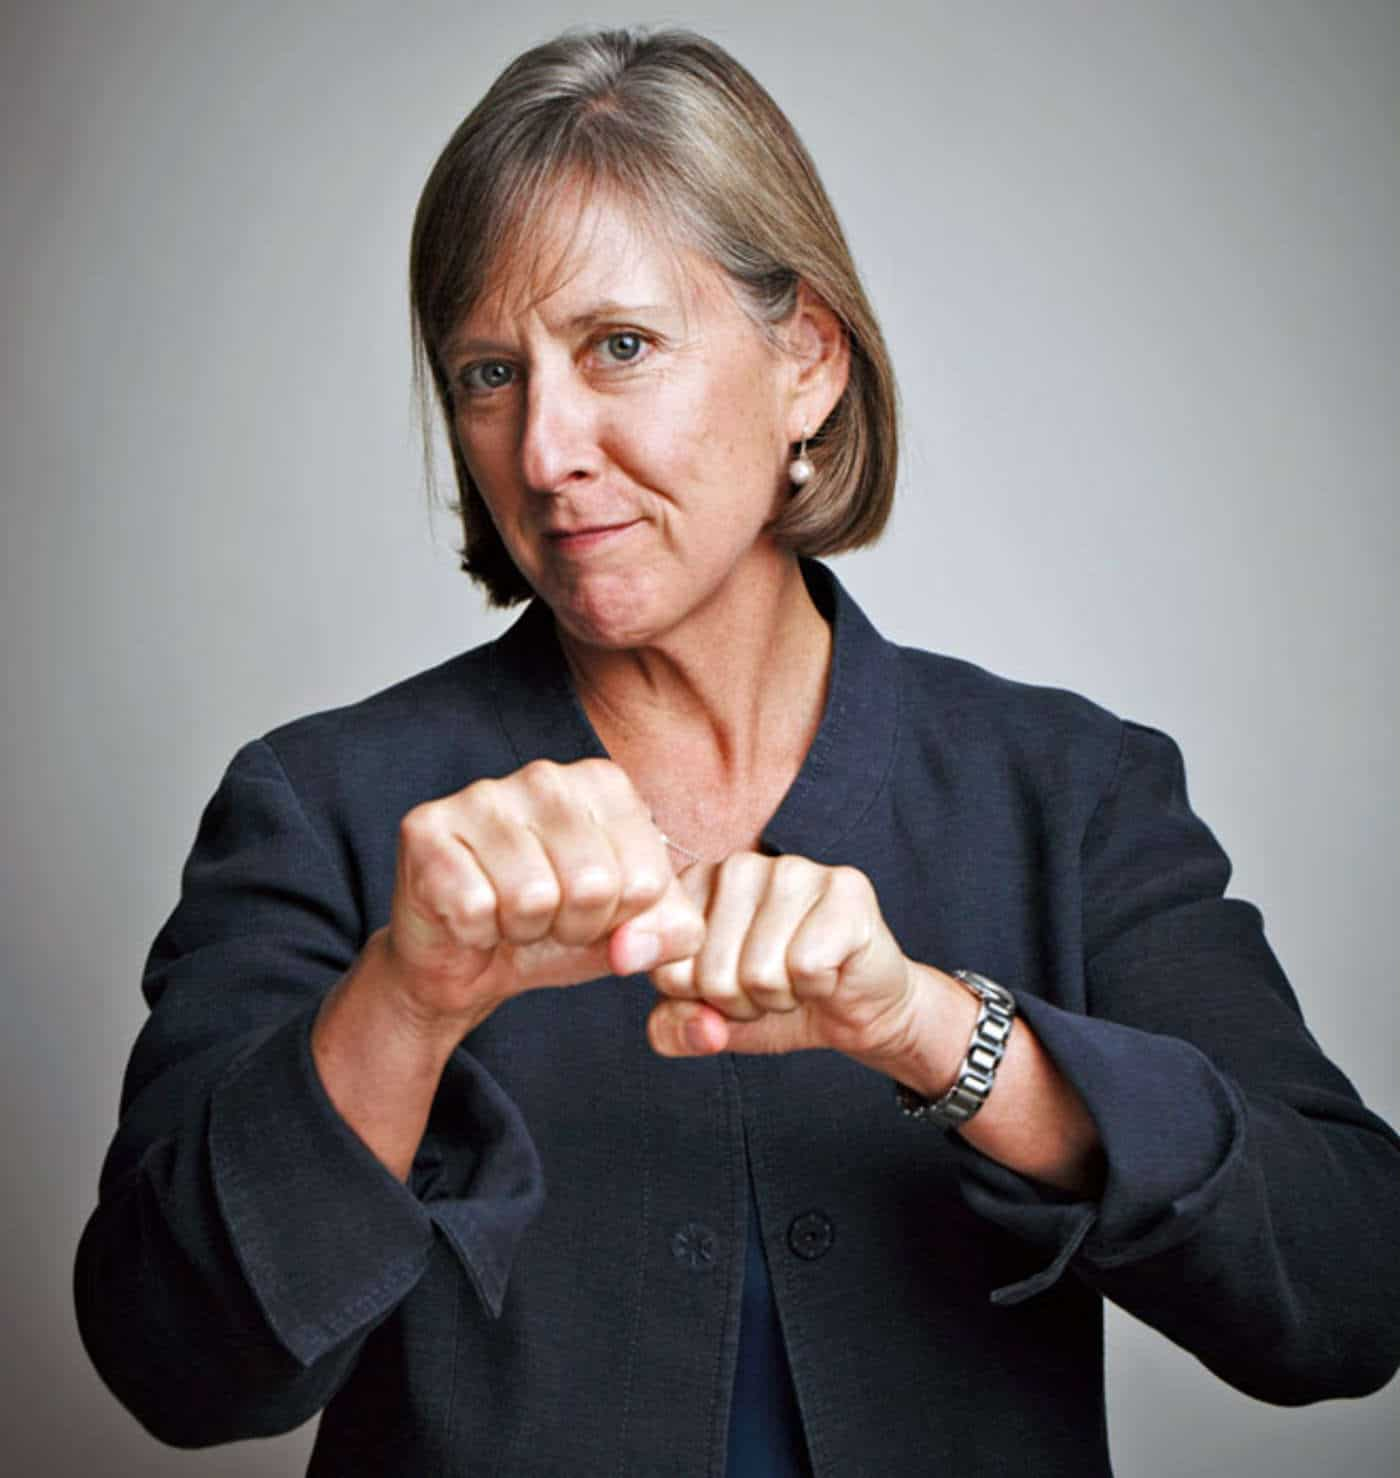 Mary Meeker; Profile In Personal Style; Profile In Style